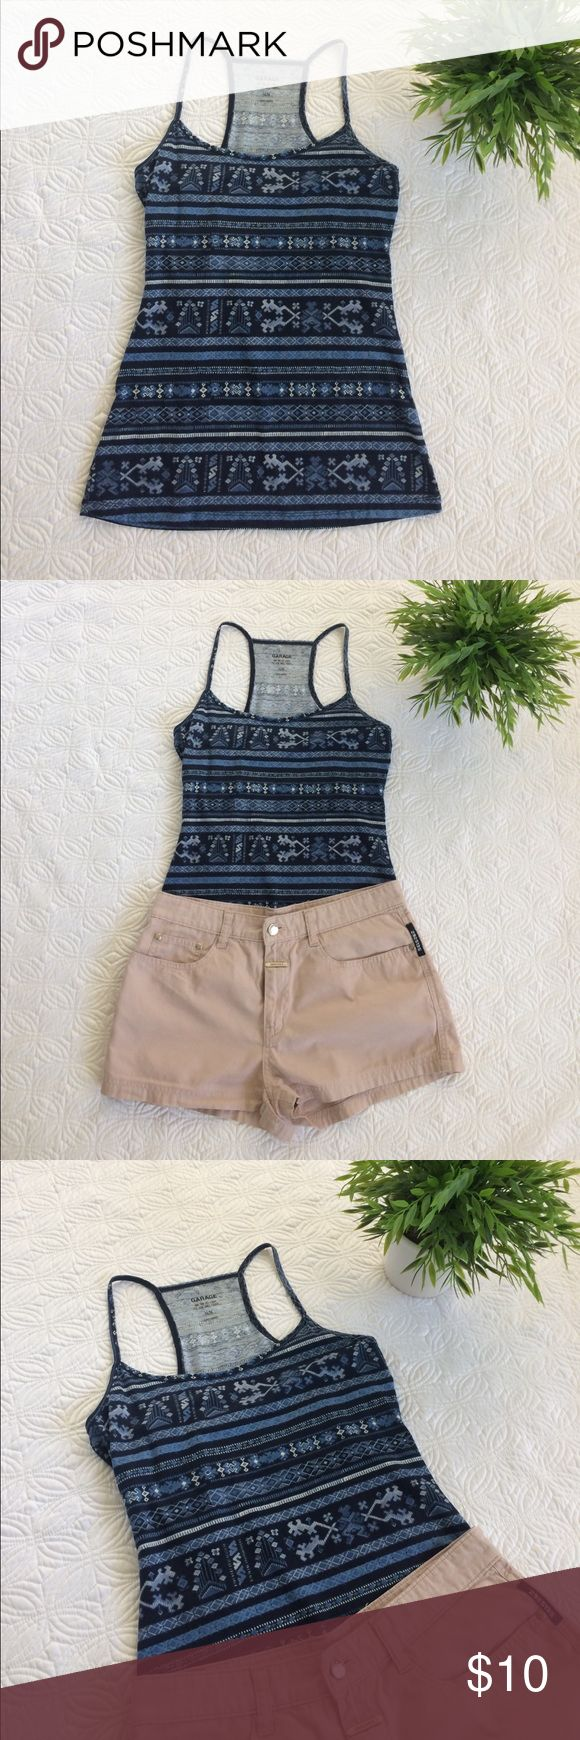 Aztec print Garage cami Soft and trendy aztec print Garage cami that would look great layered under a sheet top or sweater. No rips, tears, or stains. 95% cotton, 5% spandex. Garage Tops Camisoles